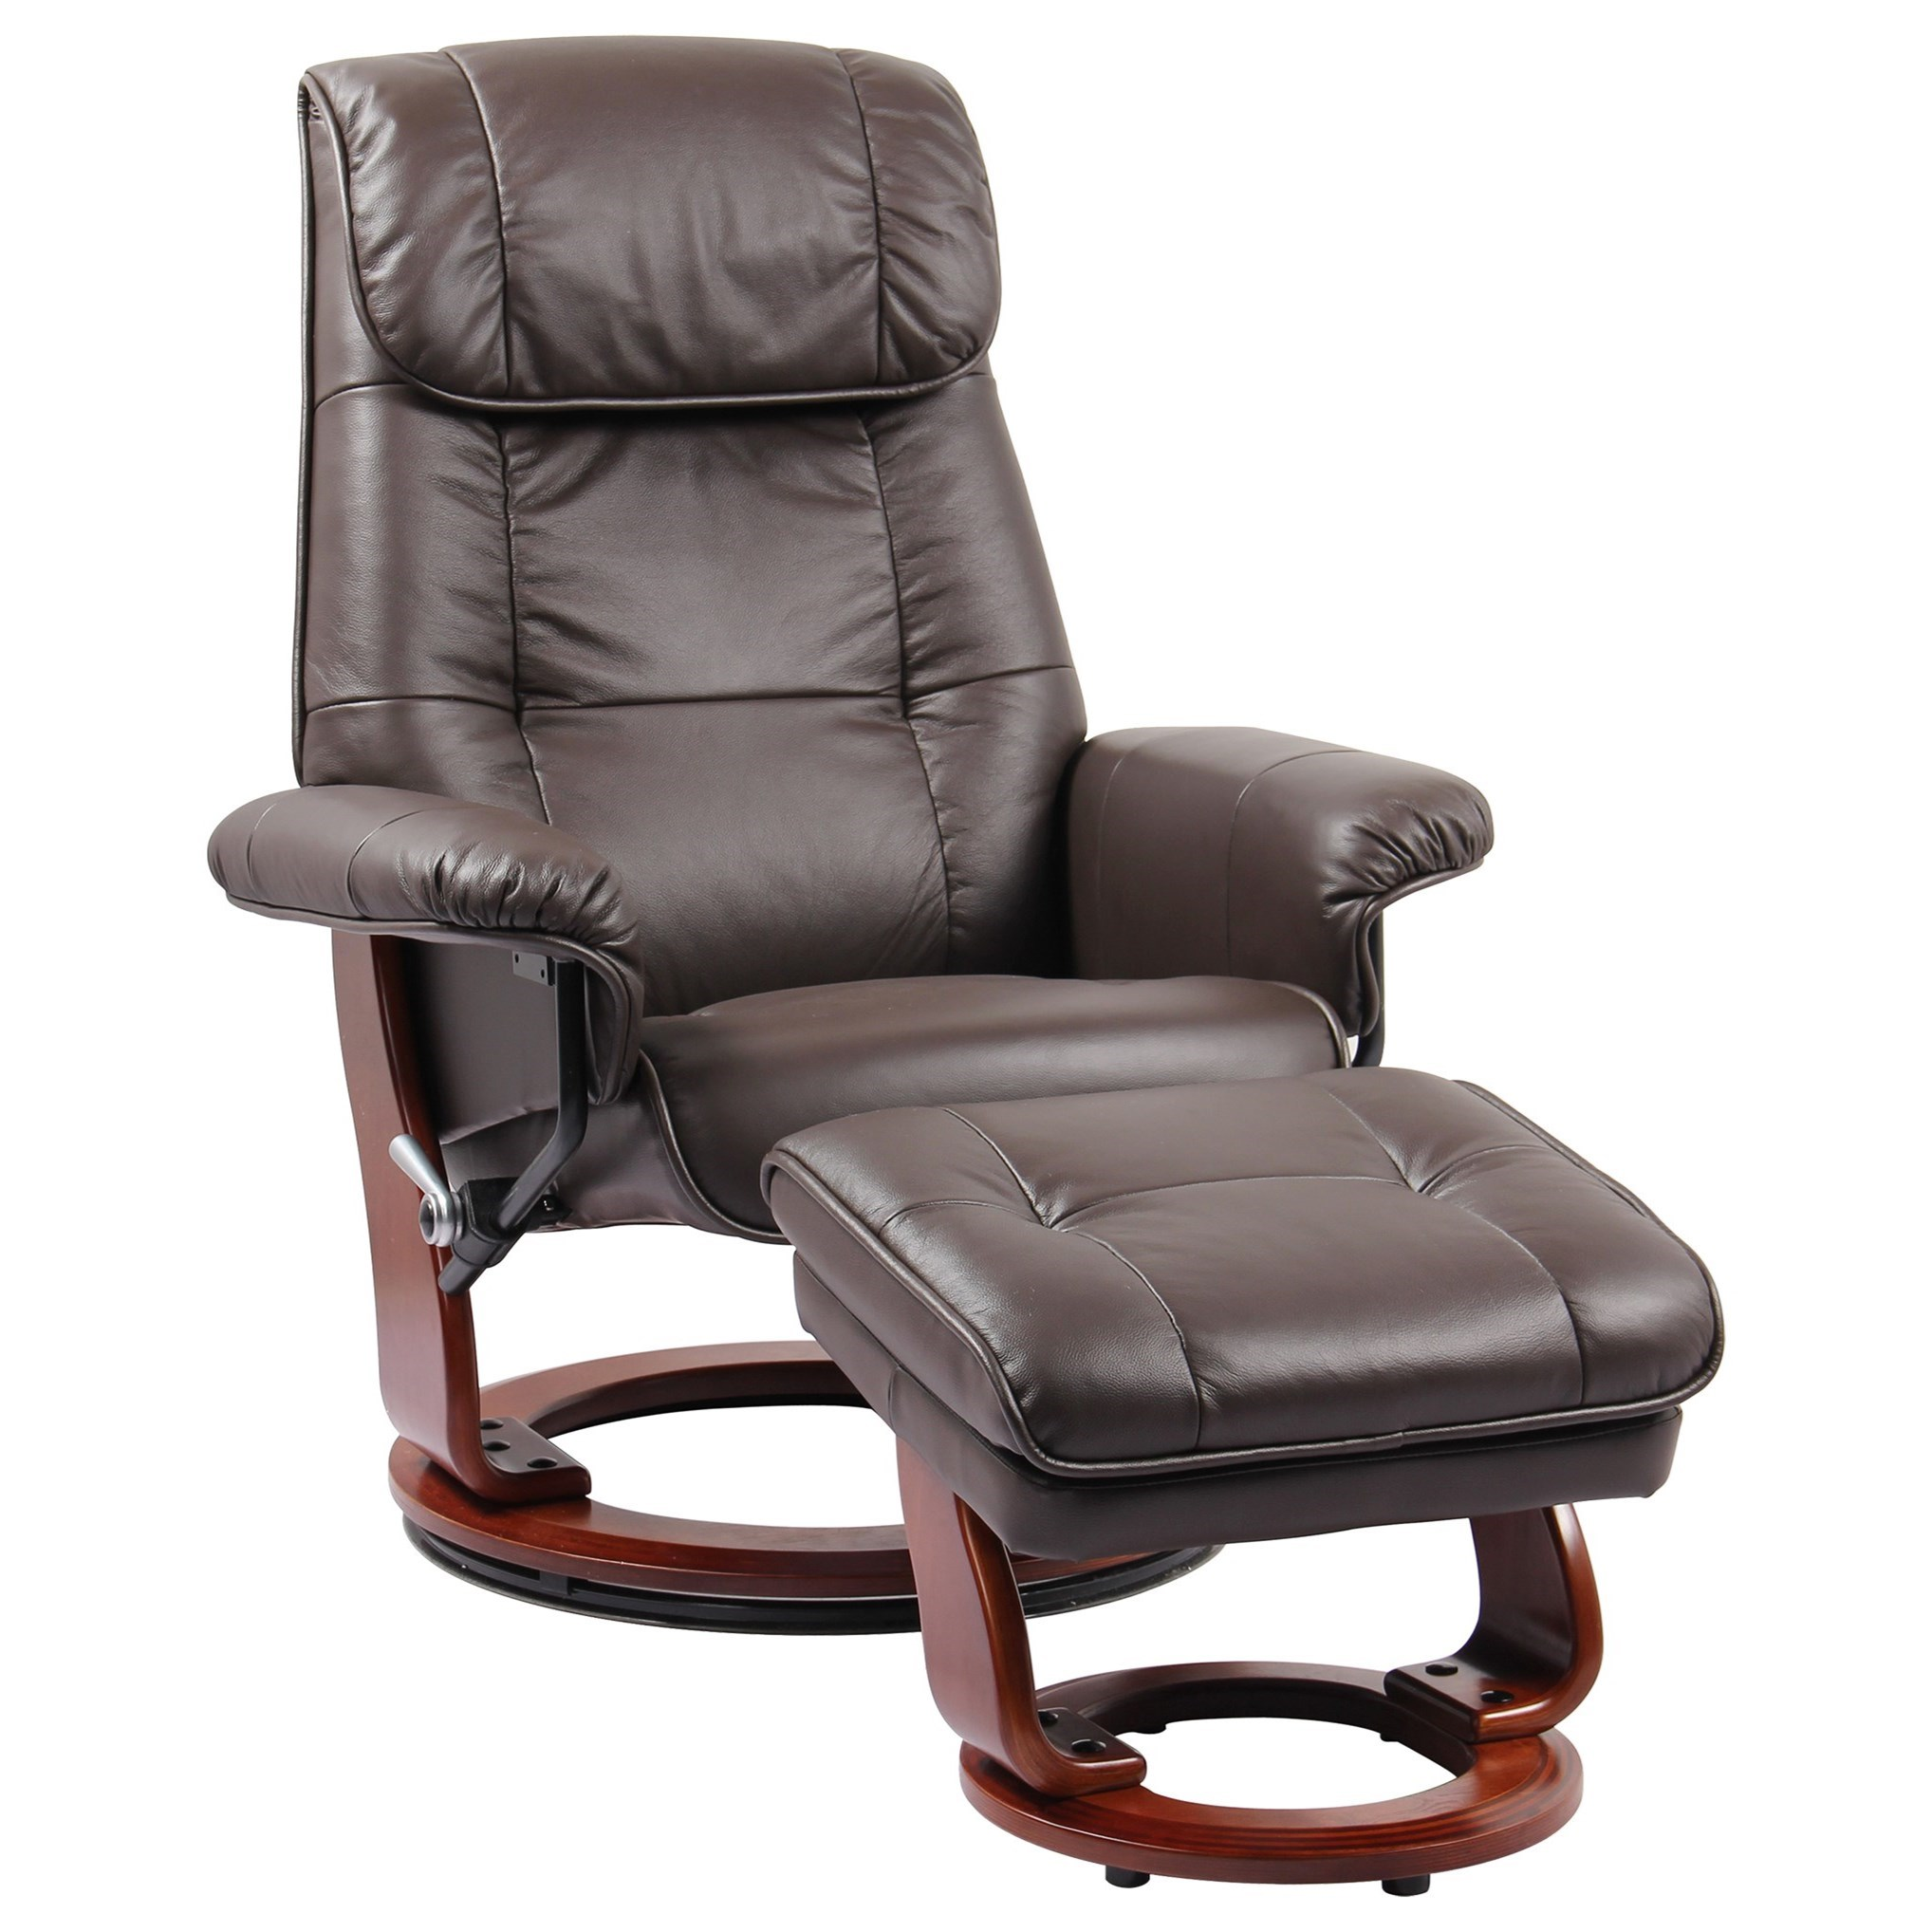 Reclining Chair And Ottoman Benchmaster Ventura Ii Reclining Chair And Ottoman